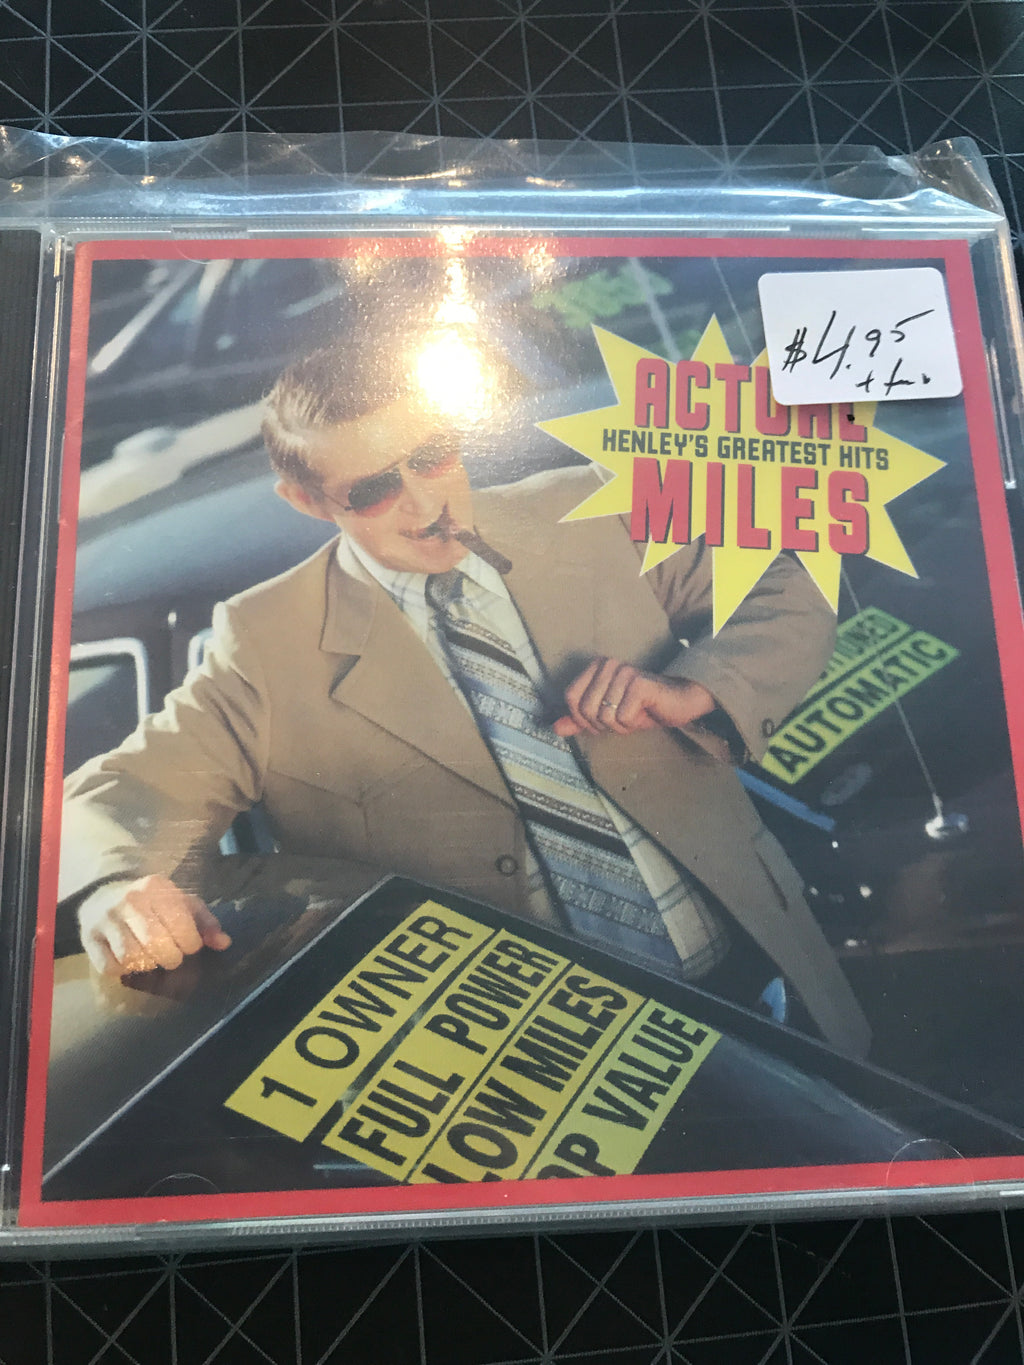 Don Henley - Actual Miles - Greatest Hits - Used CD